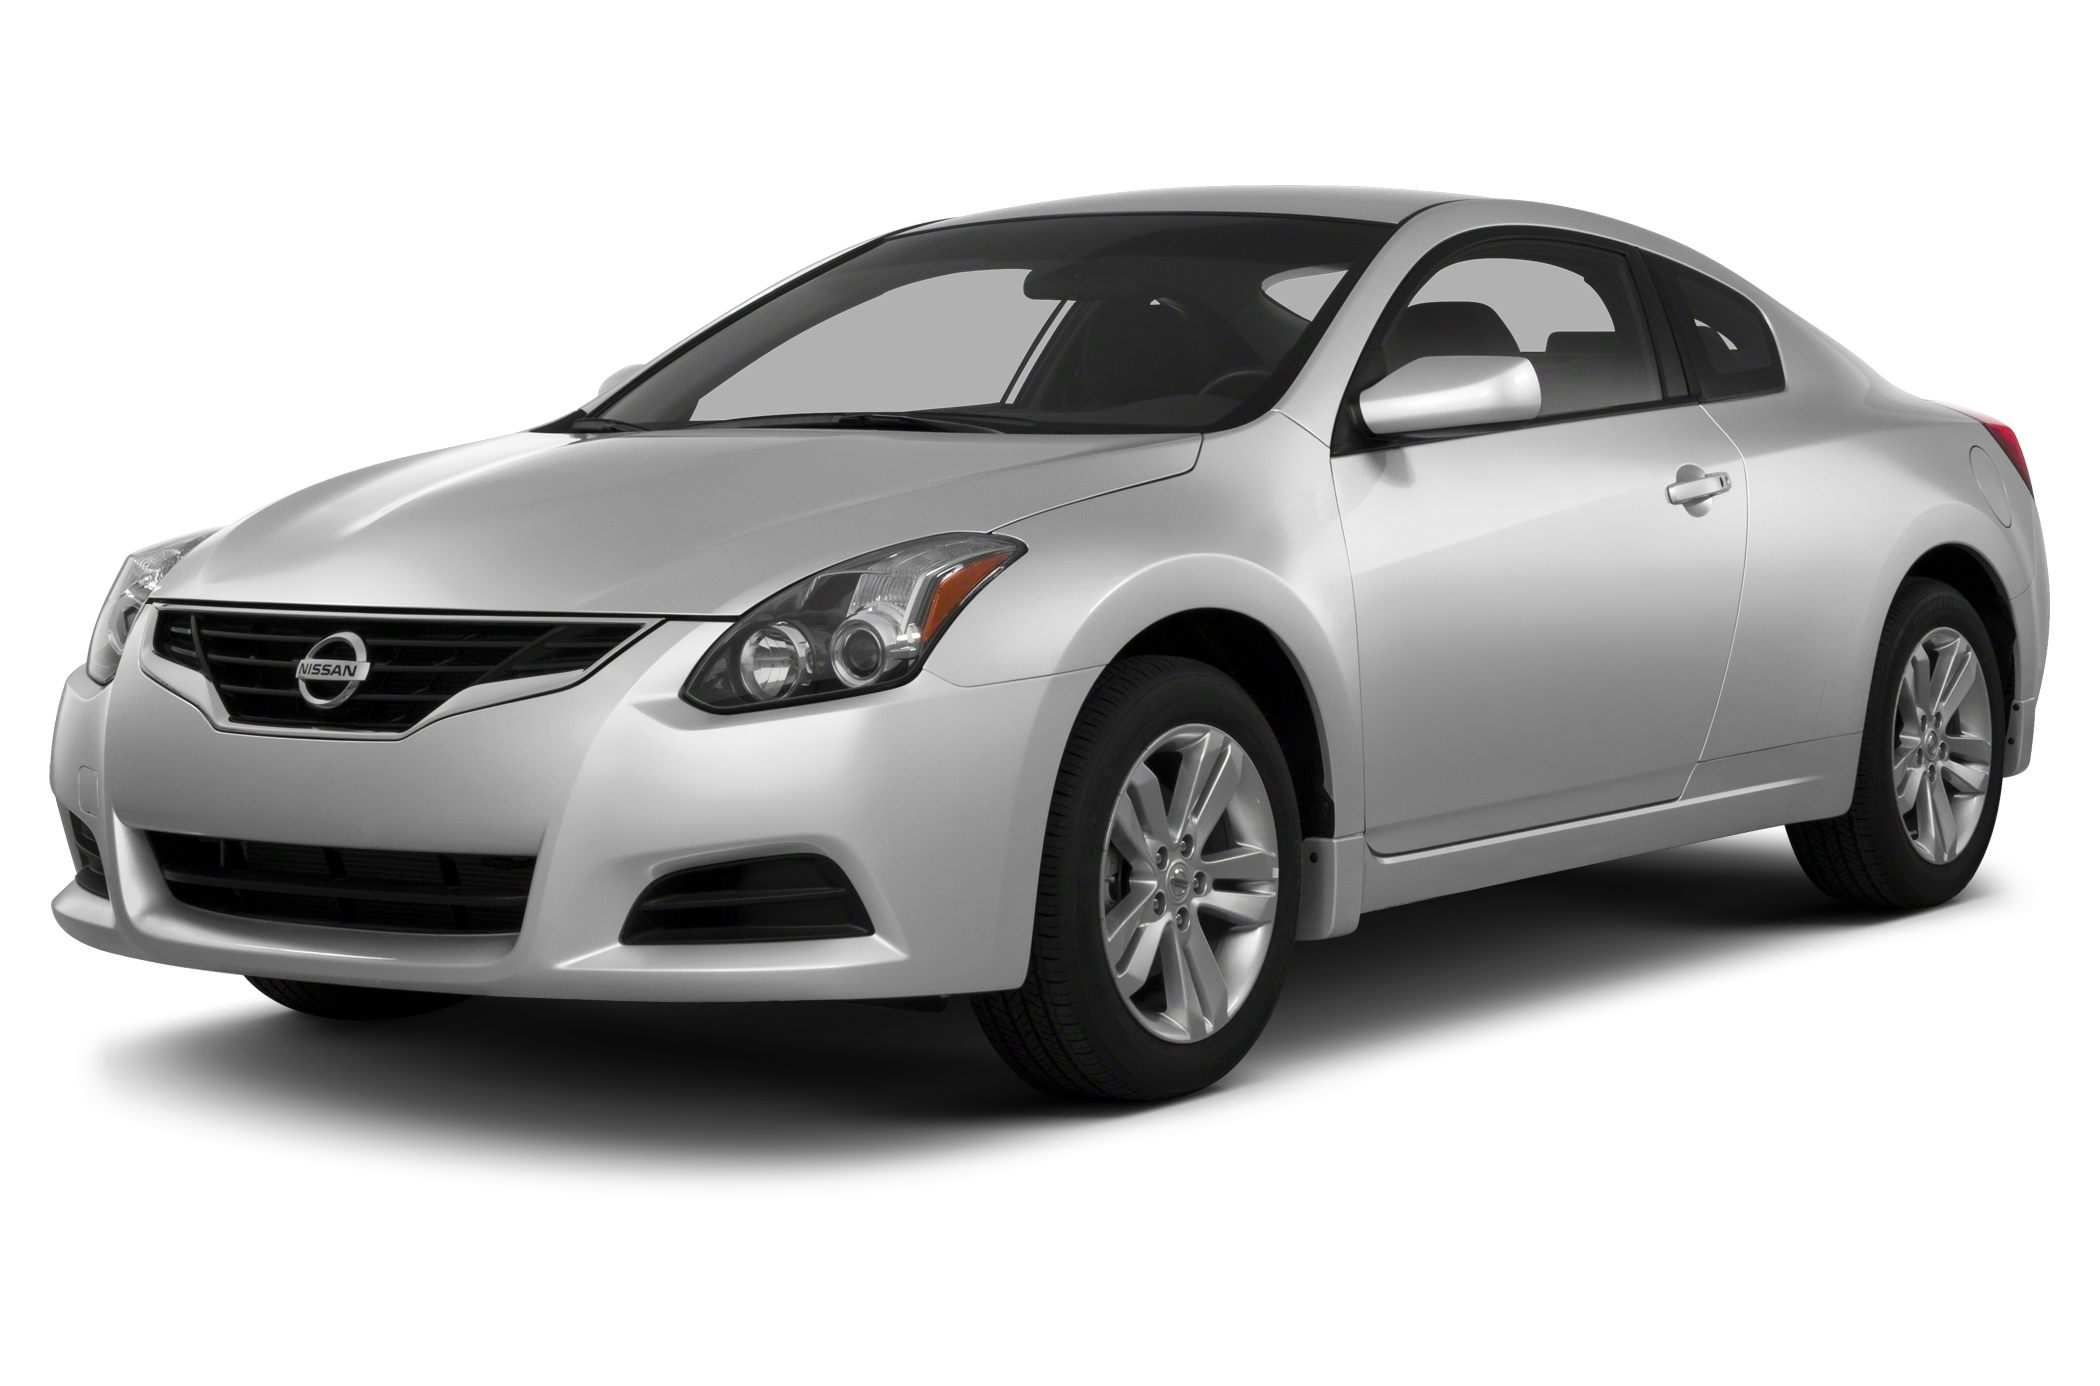 13 New 2013 Nissan Altima Coupe Overview for 2013 Nissan Altima Coupe